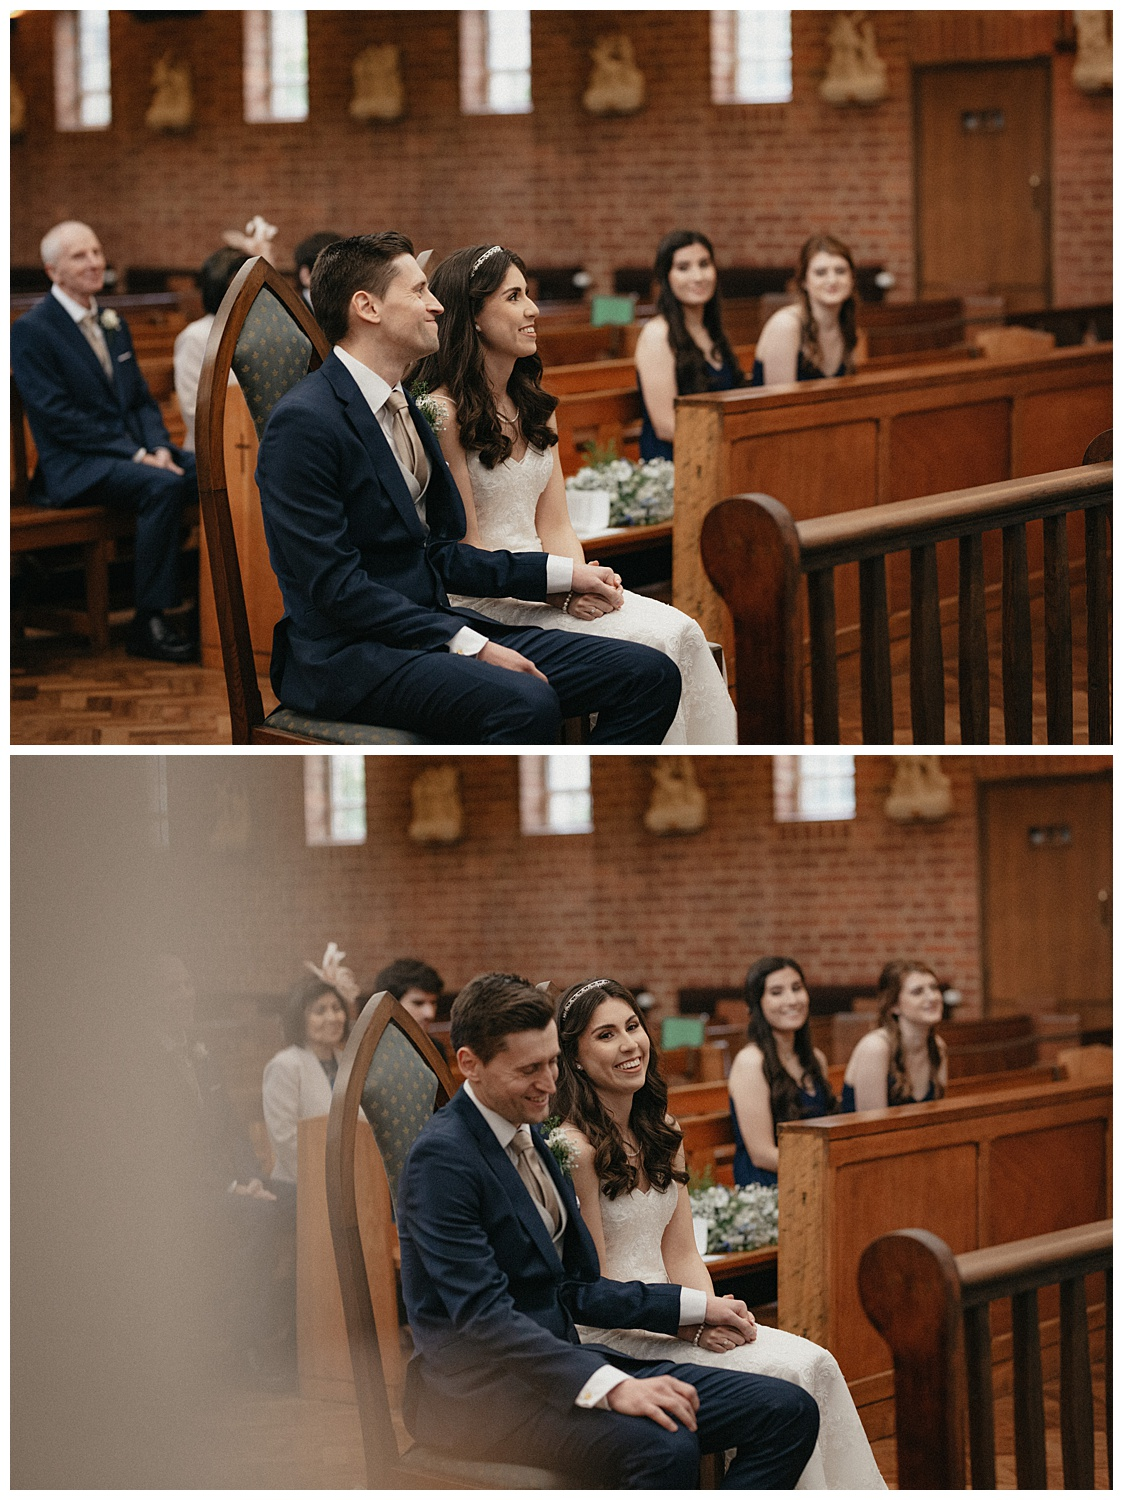 Wedding at Foxhills, Surrey Wedding Photographer - bride and groom sitting and laughing